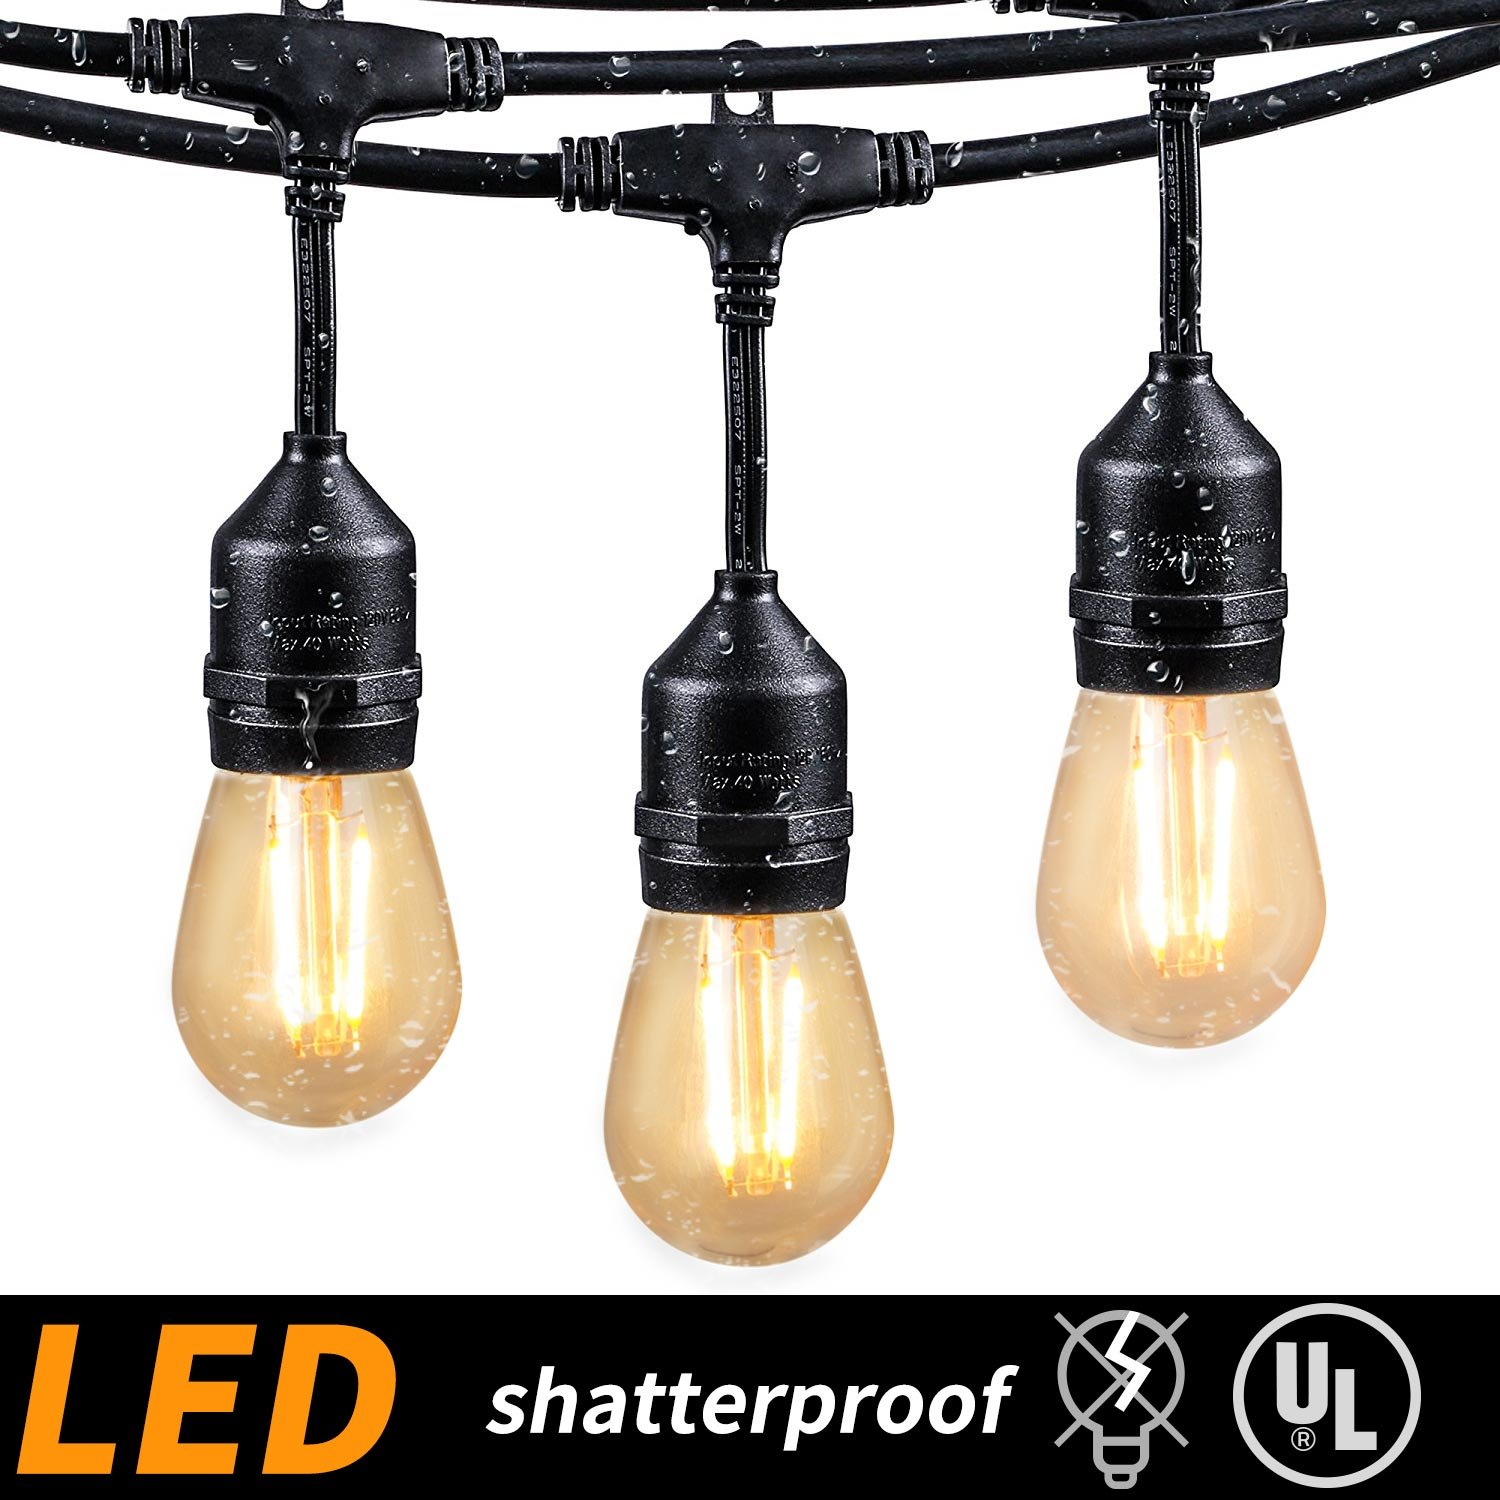 48FT Outdoor String Lights With 15 Shatterproof LED S14